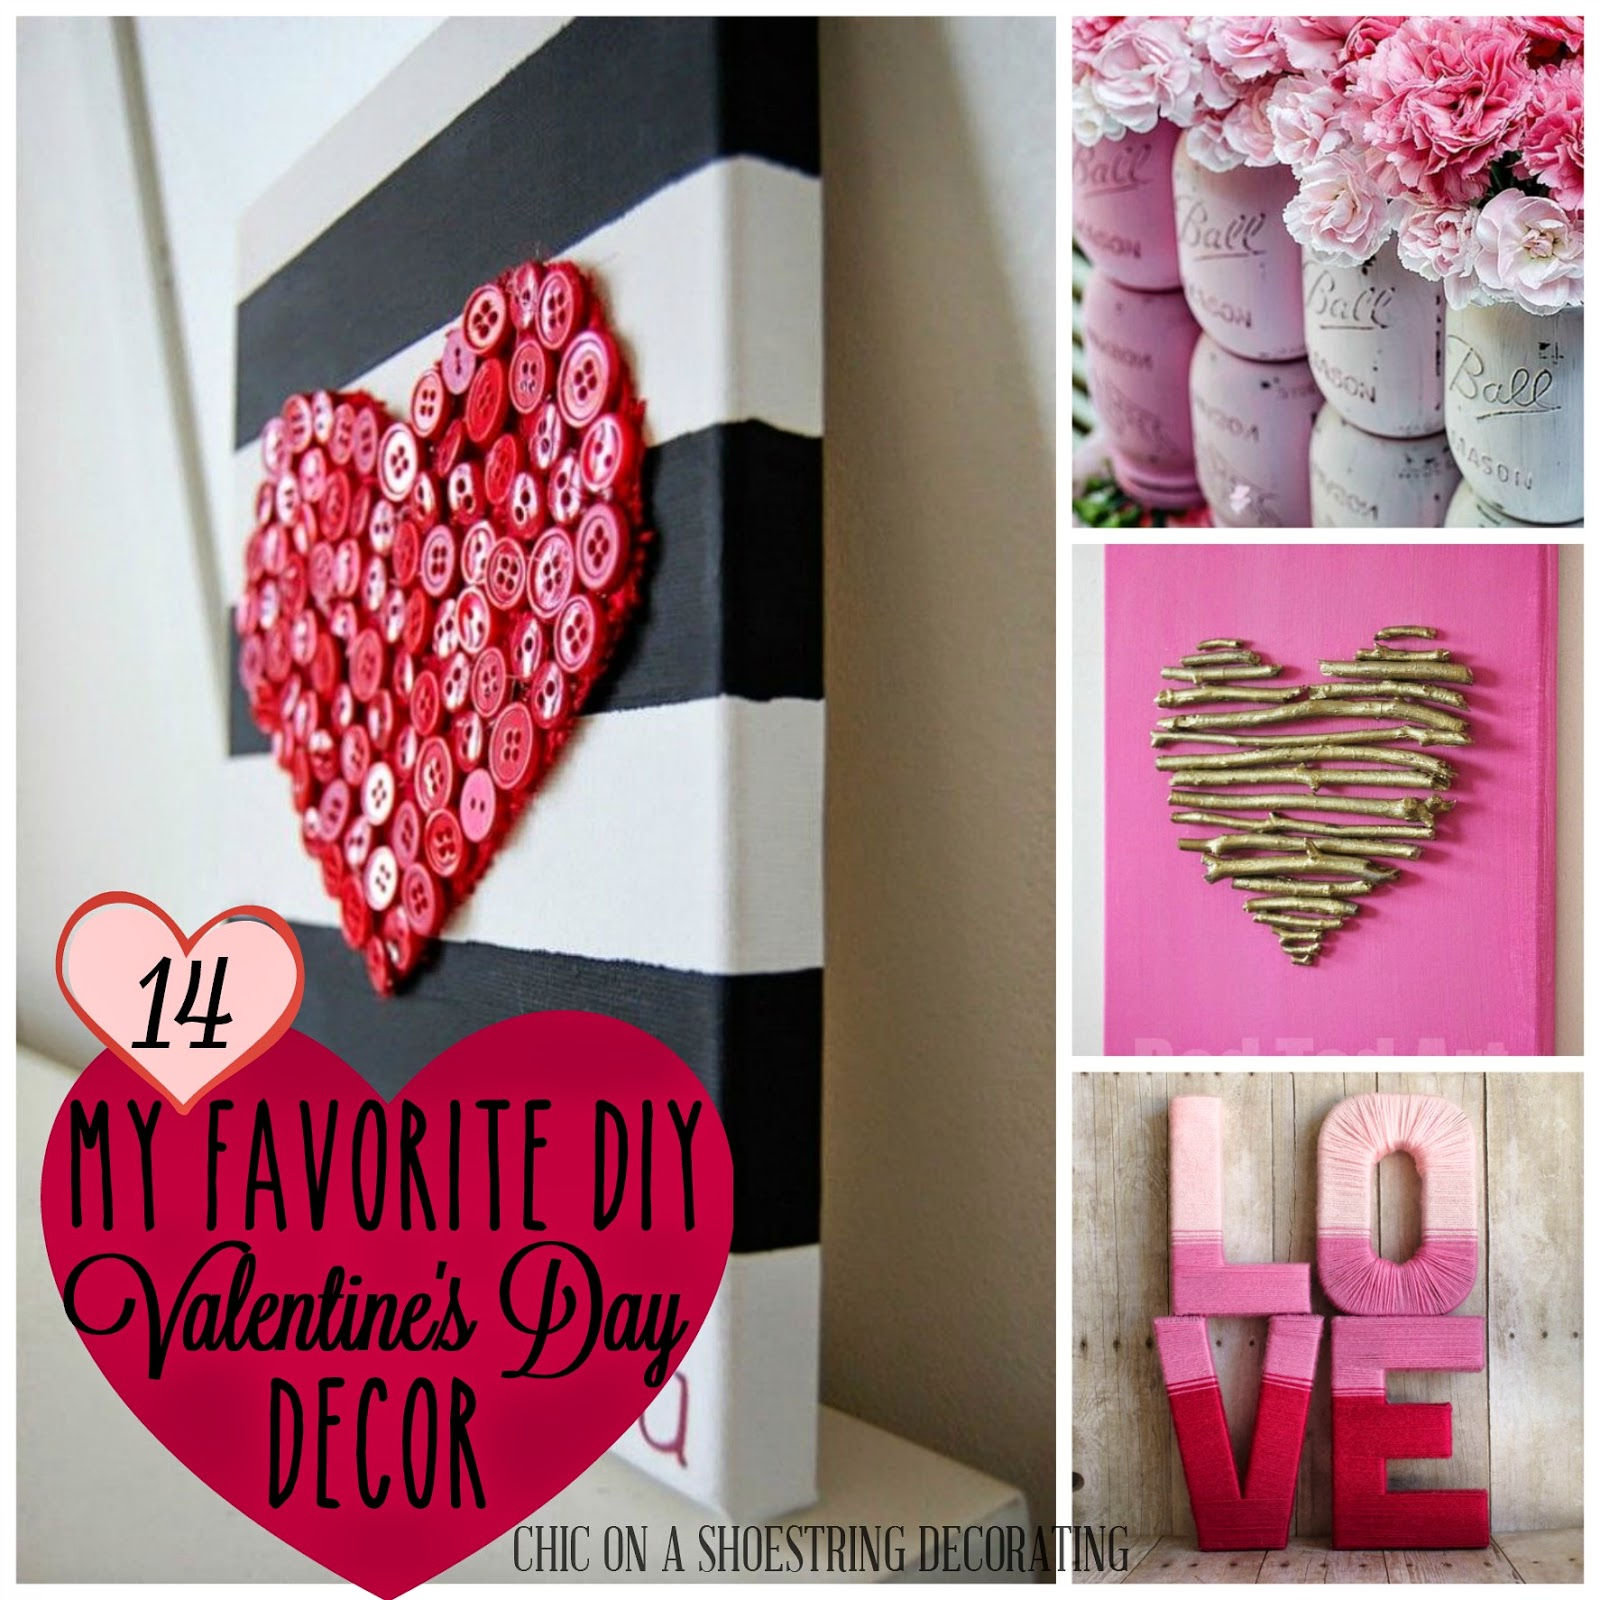 chic on a shoestring decorating my 14 favorite diy valentines day decor ideas - Valentines Day Decor